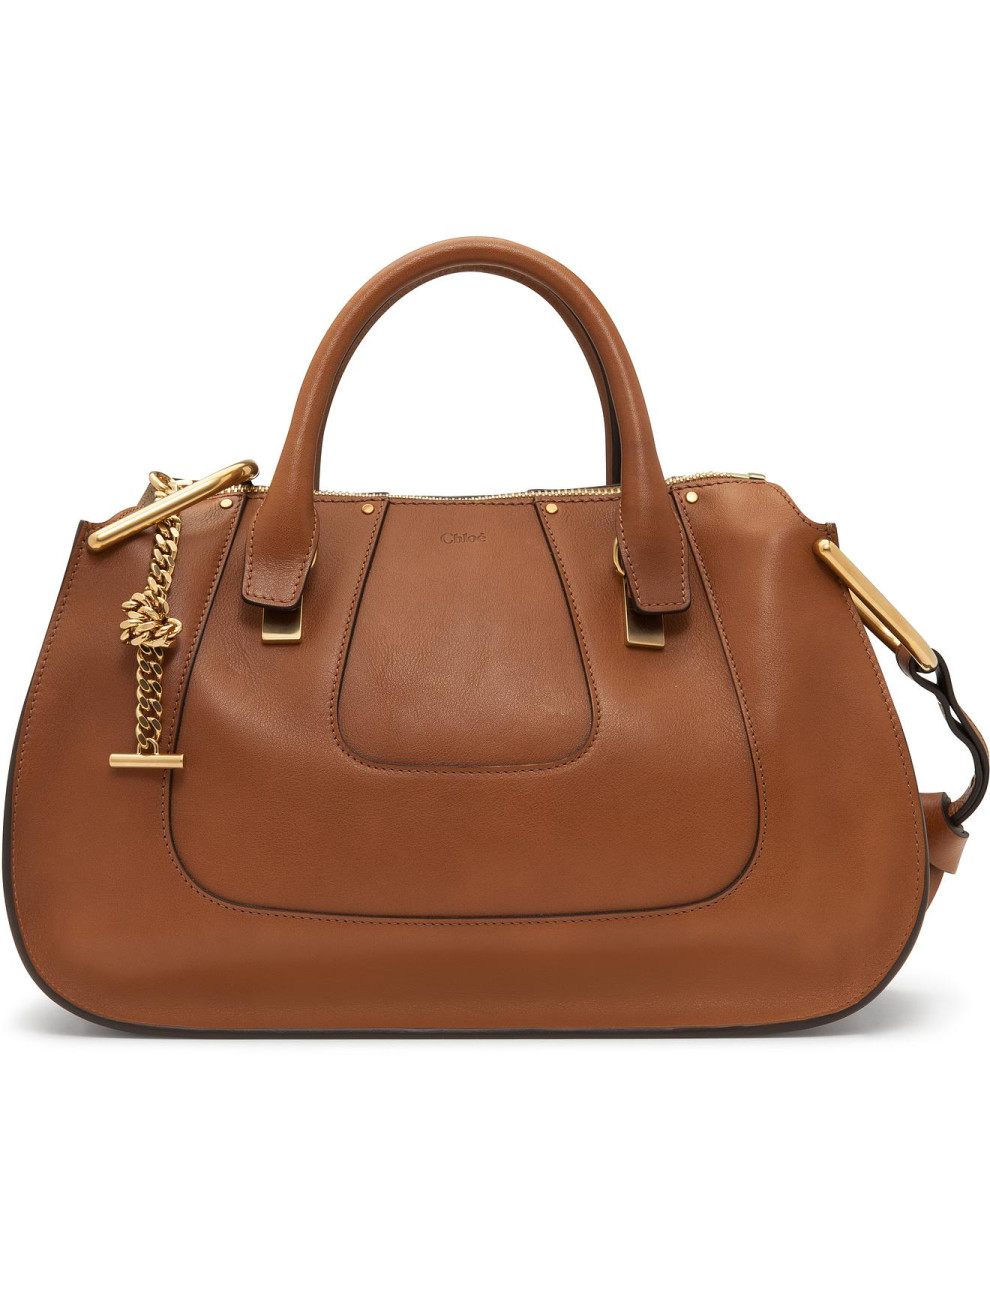 chloe best replica - Chlo�� | Bags & Accessories | International Designers | David Jones